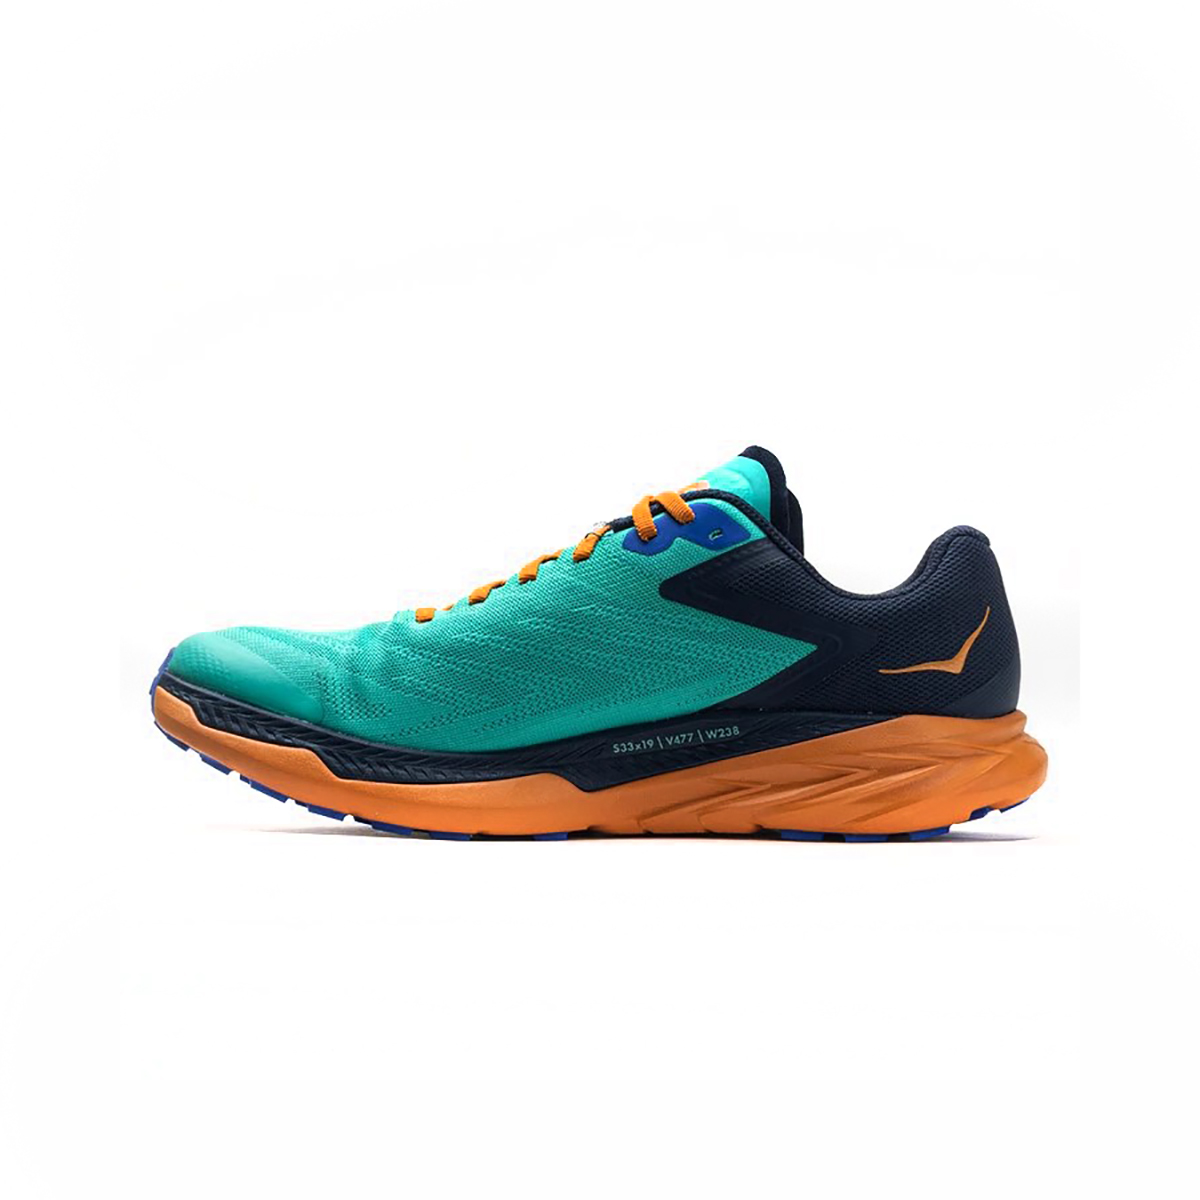 Men's Hoka One One Zinal Trail Running Shoe - Color: Atlantis / Outer Space - Size: 7 - Width: Narrow, Atlantis / Outer Space, large, image 2